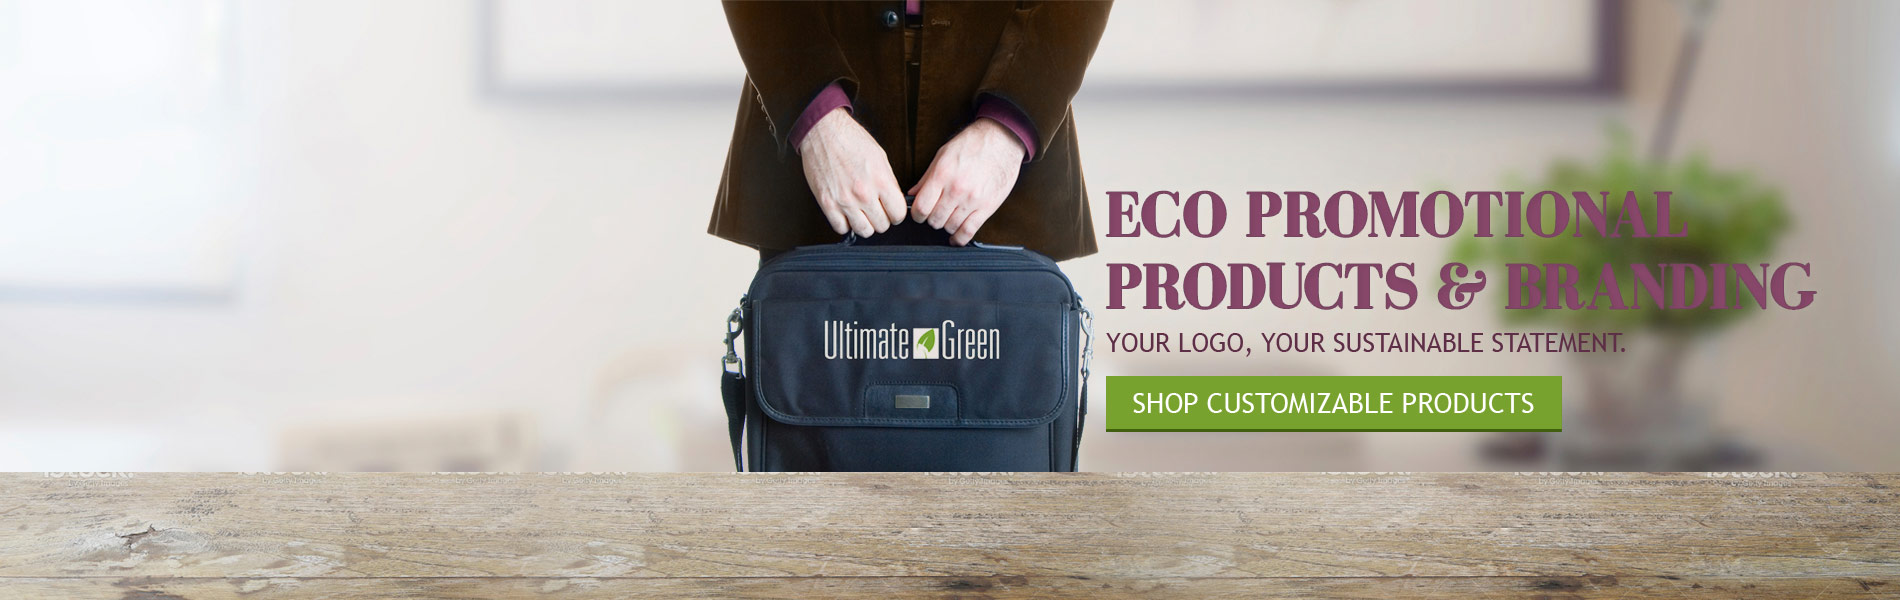 Eco Promotional Products Branding and Corporate Gifts